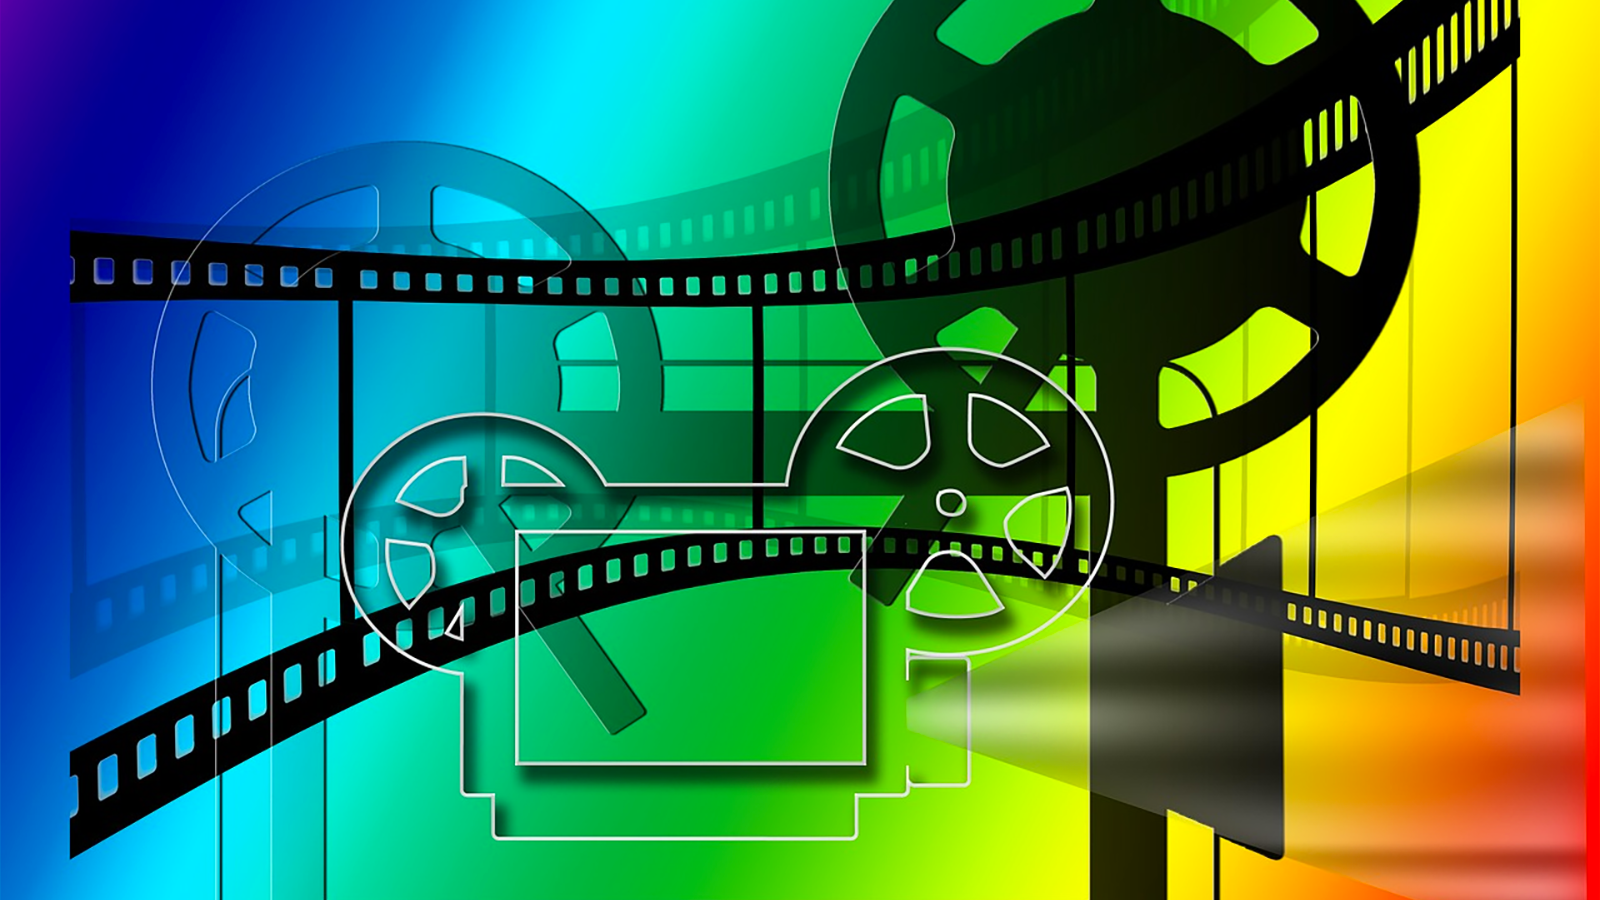 colourful picture: film reel and video camera | Video Marketing Kent